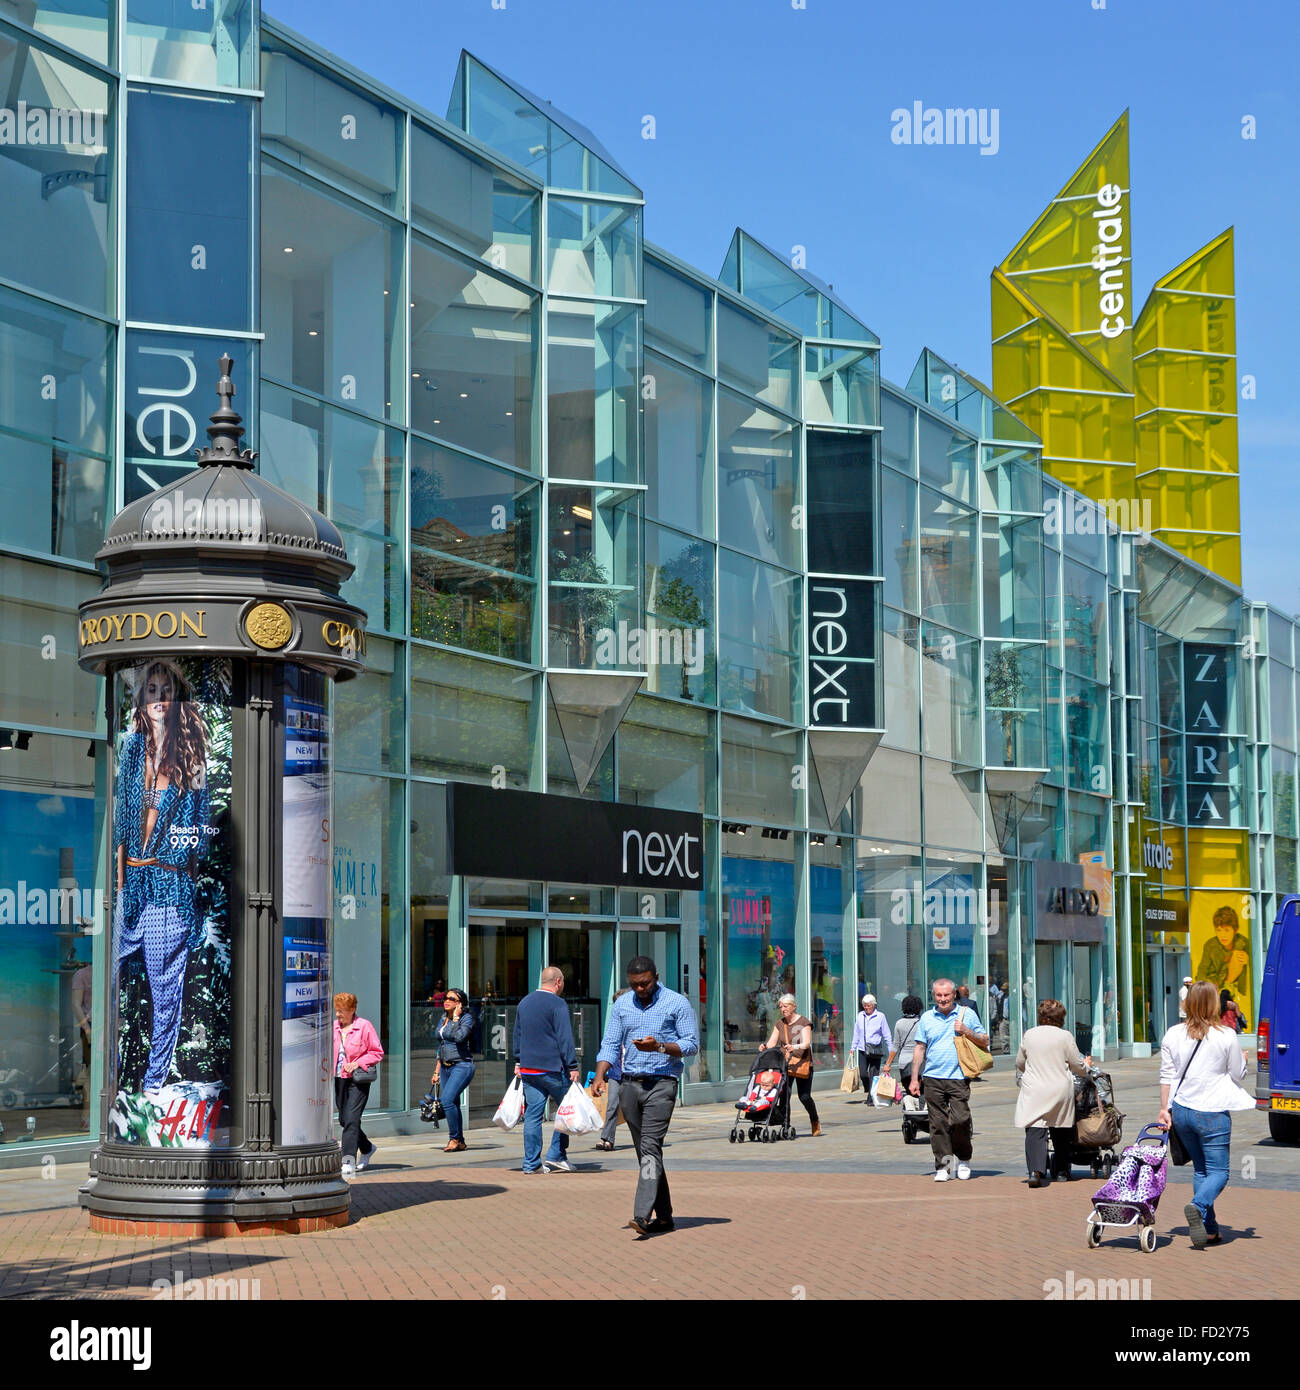 Croydon town centre pedestrianised shopping street with large Next store - Stock Image